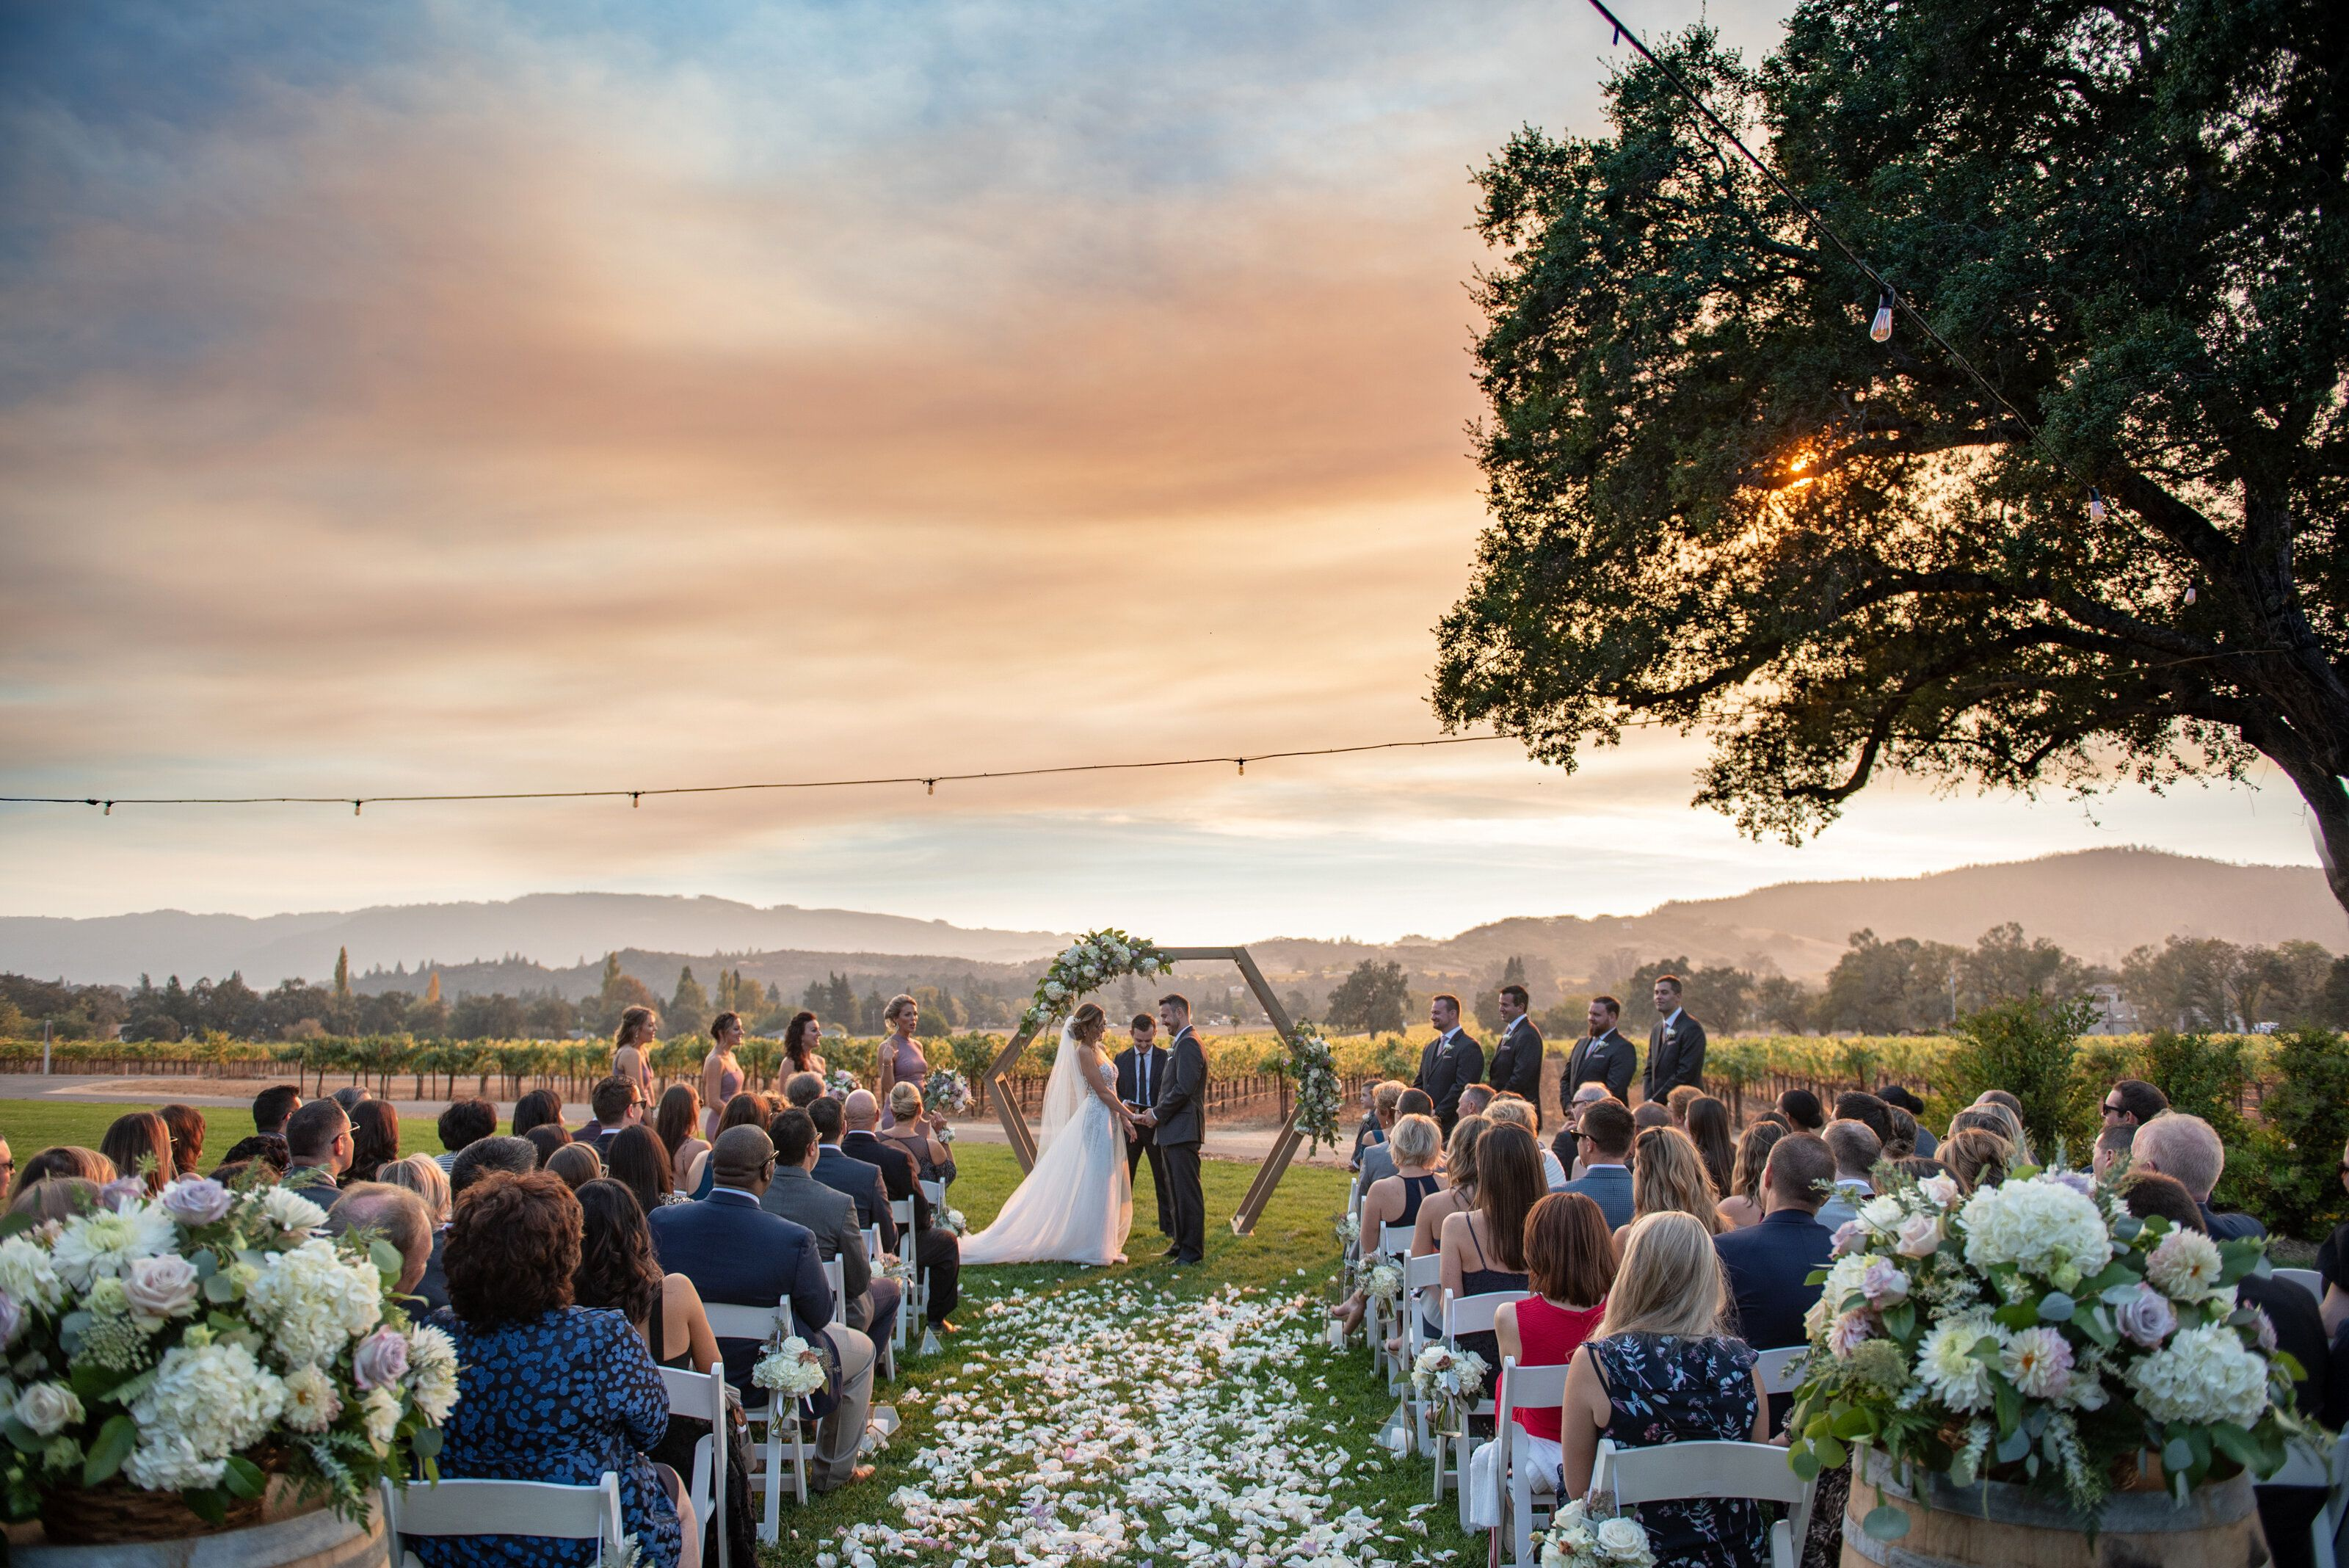 The couple's ceremony backed by a smoky sunset.